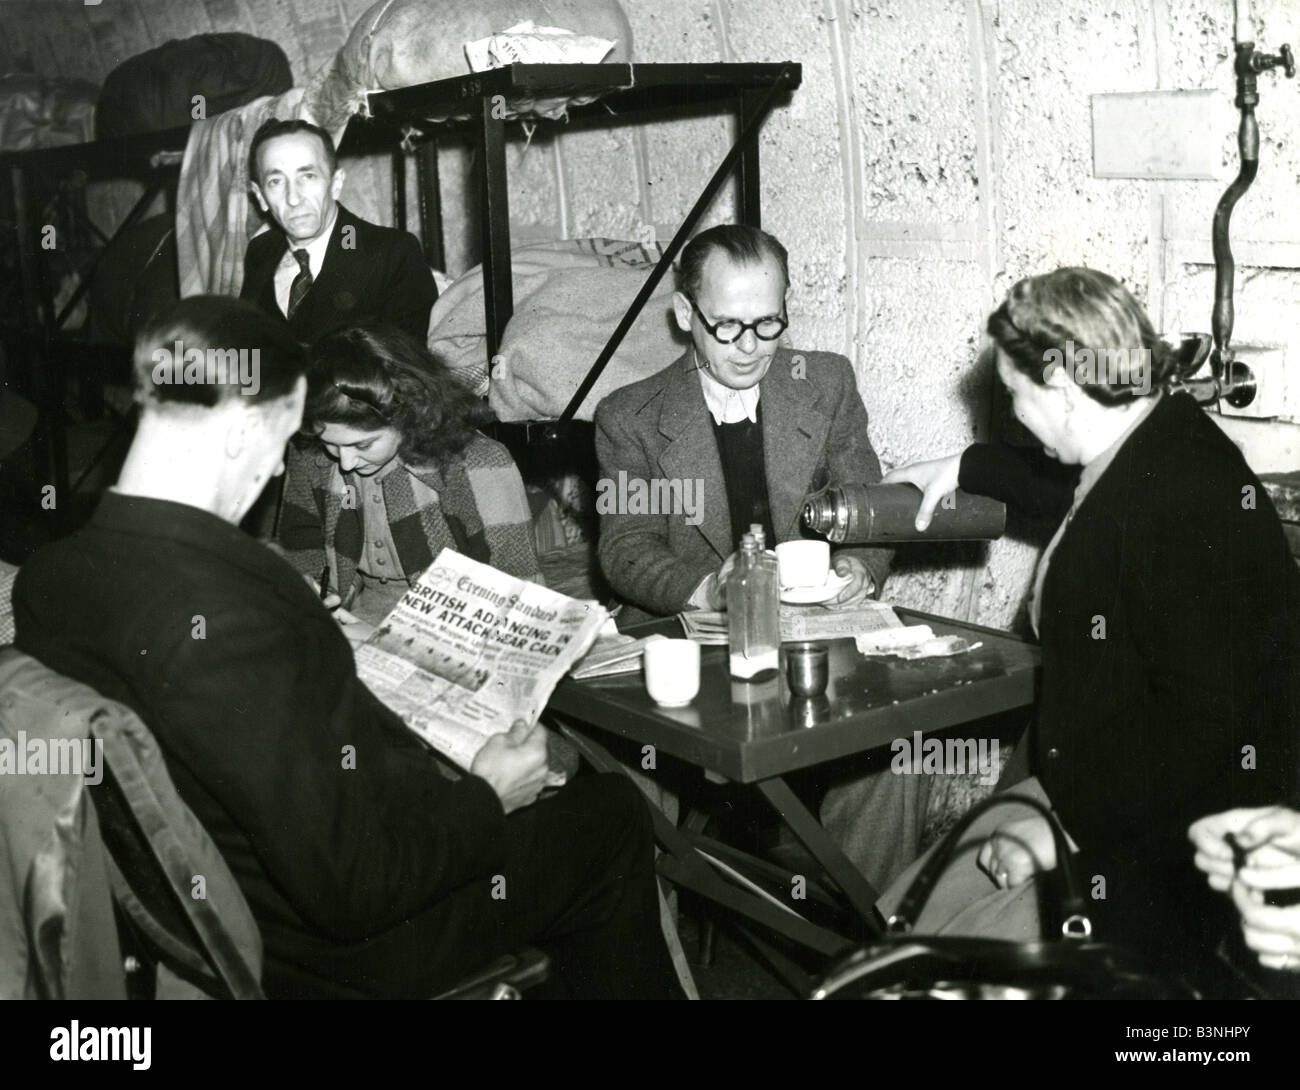 UNDERGROUND SHELTER at a Holborn tube station, London, in WW2 - Stock Image